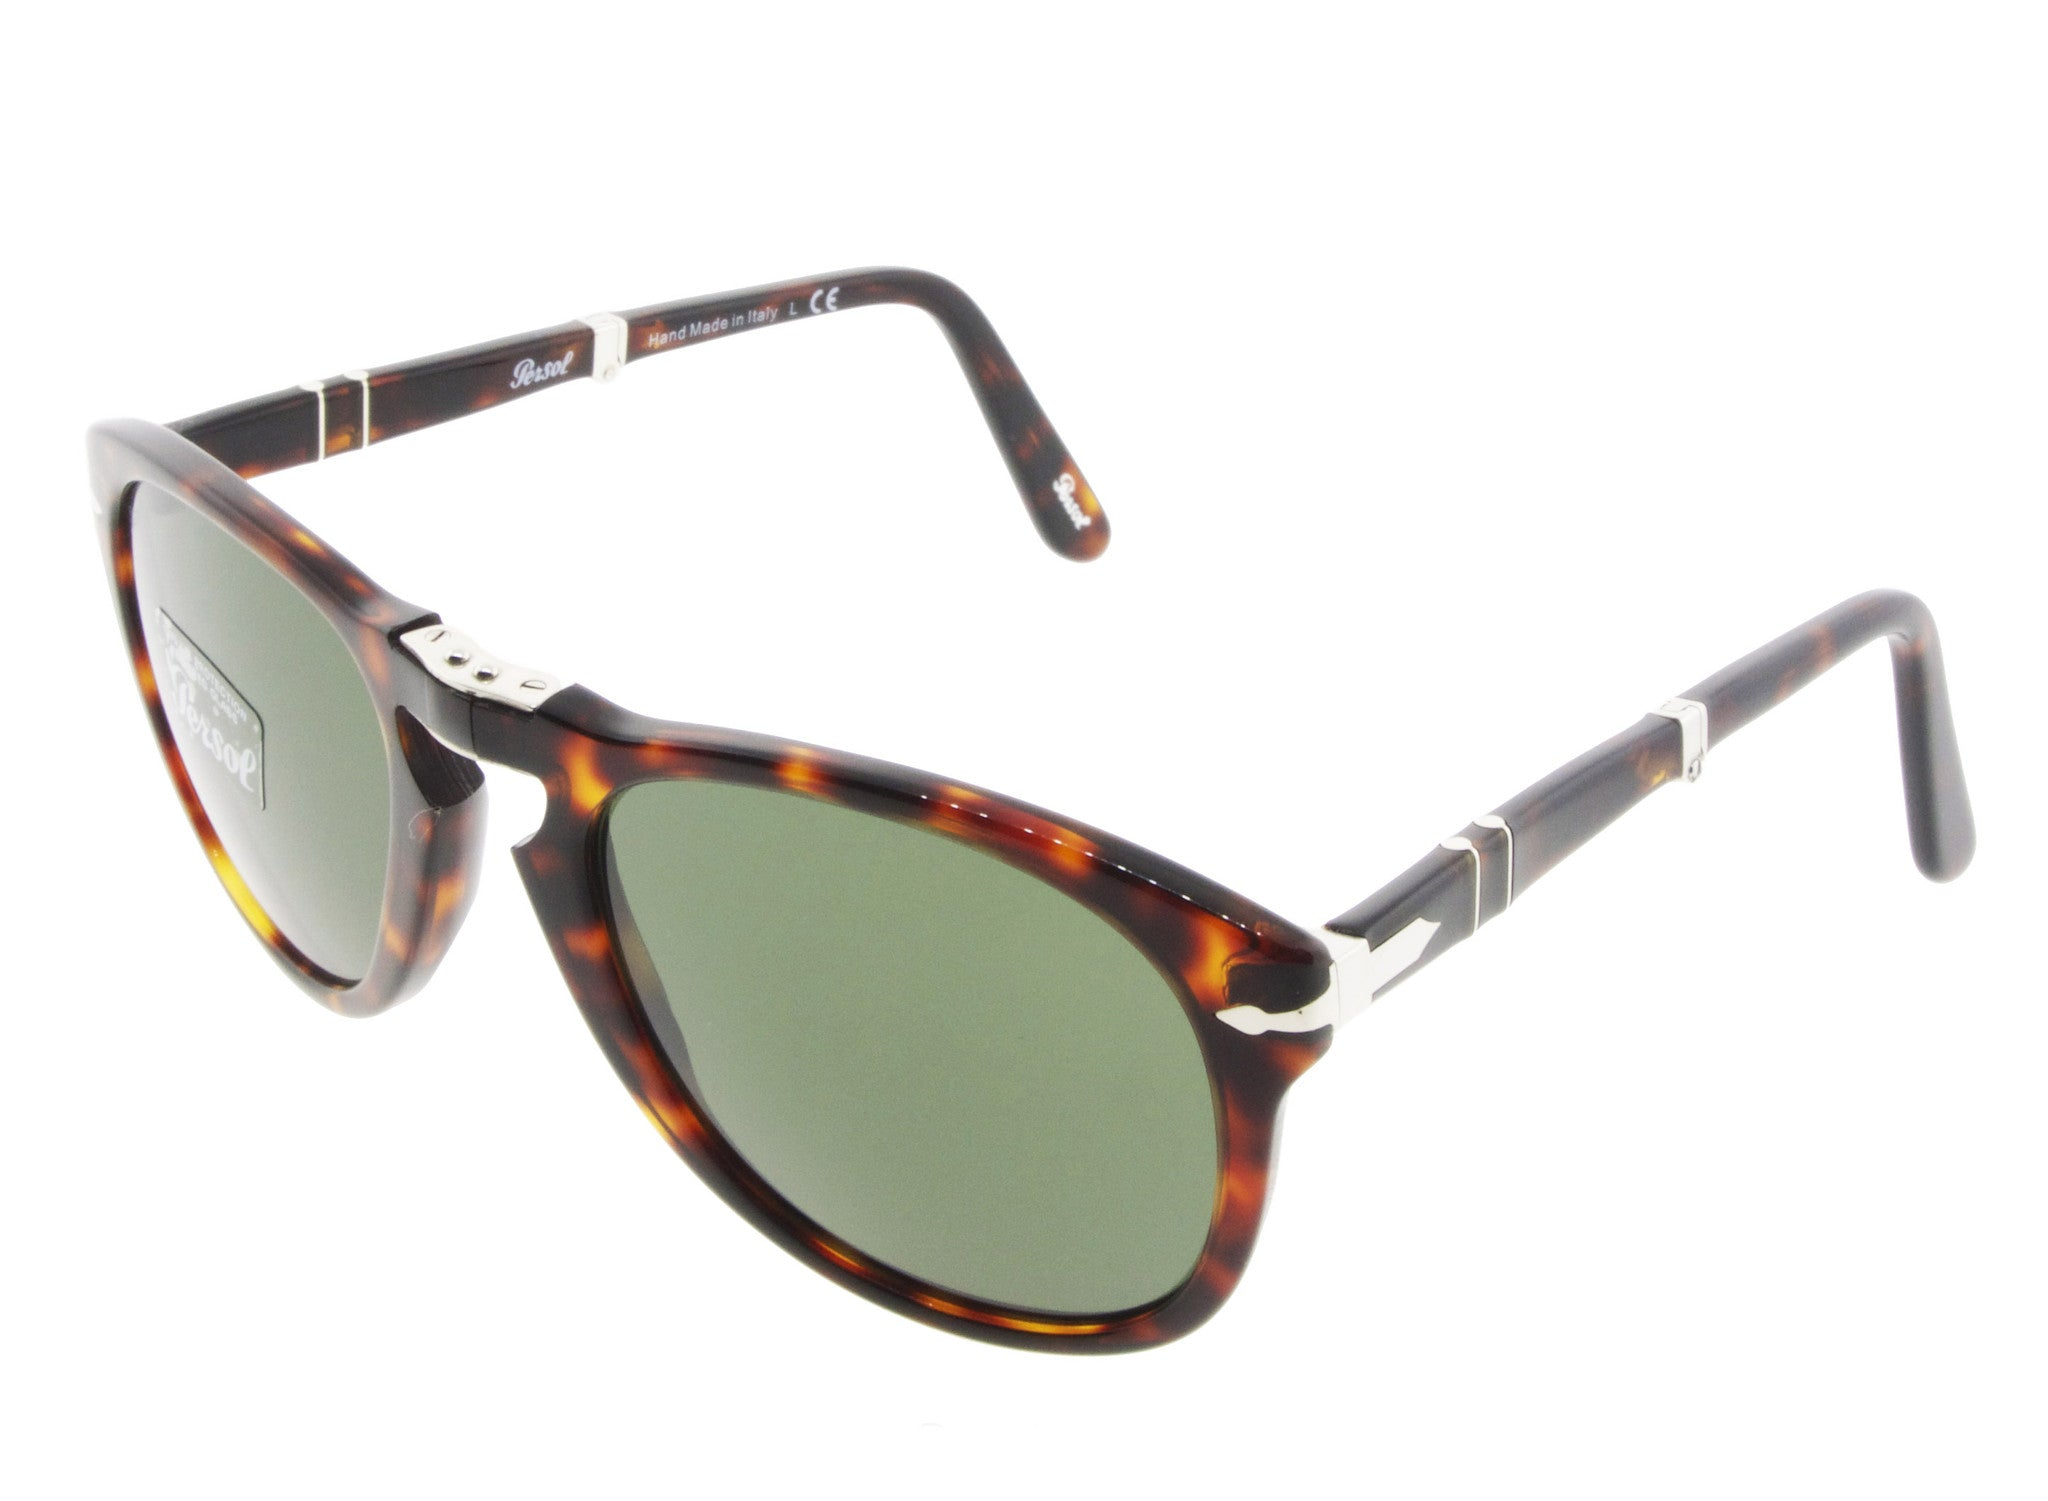 2decdd26bc Persol Folding Sunglasses 714 24 31 Havana with Green Size 52